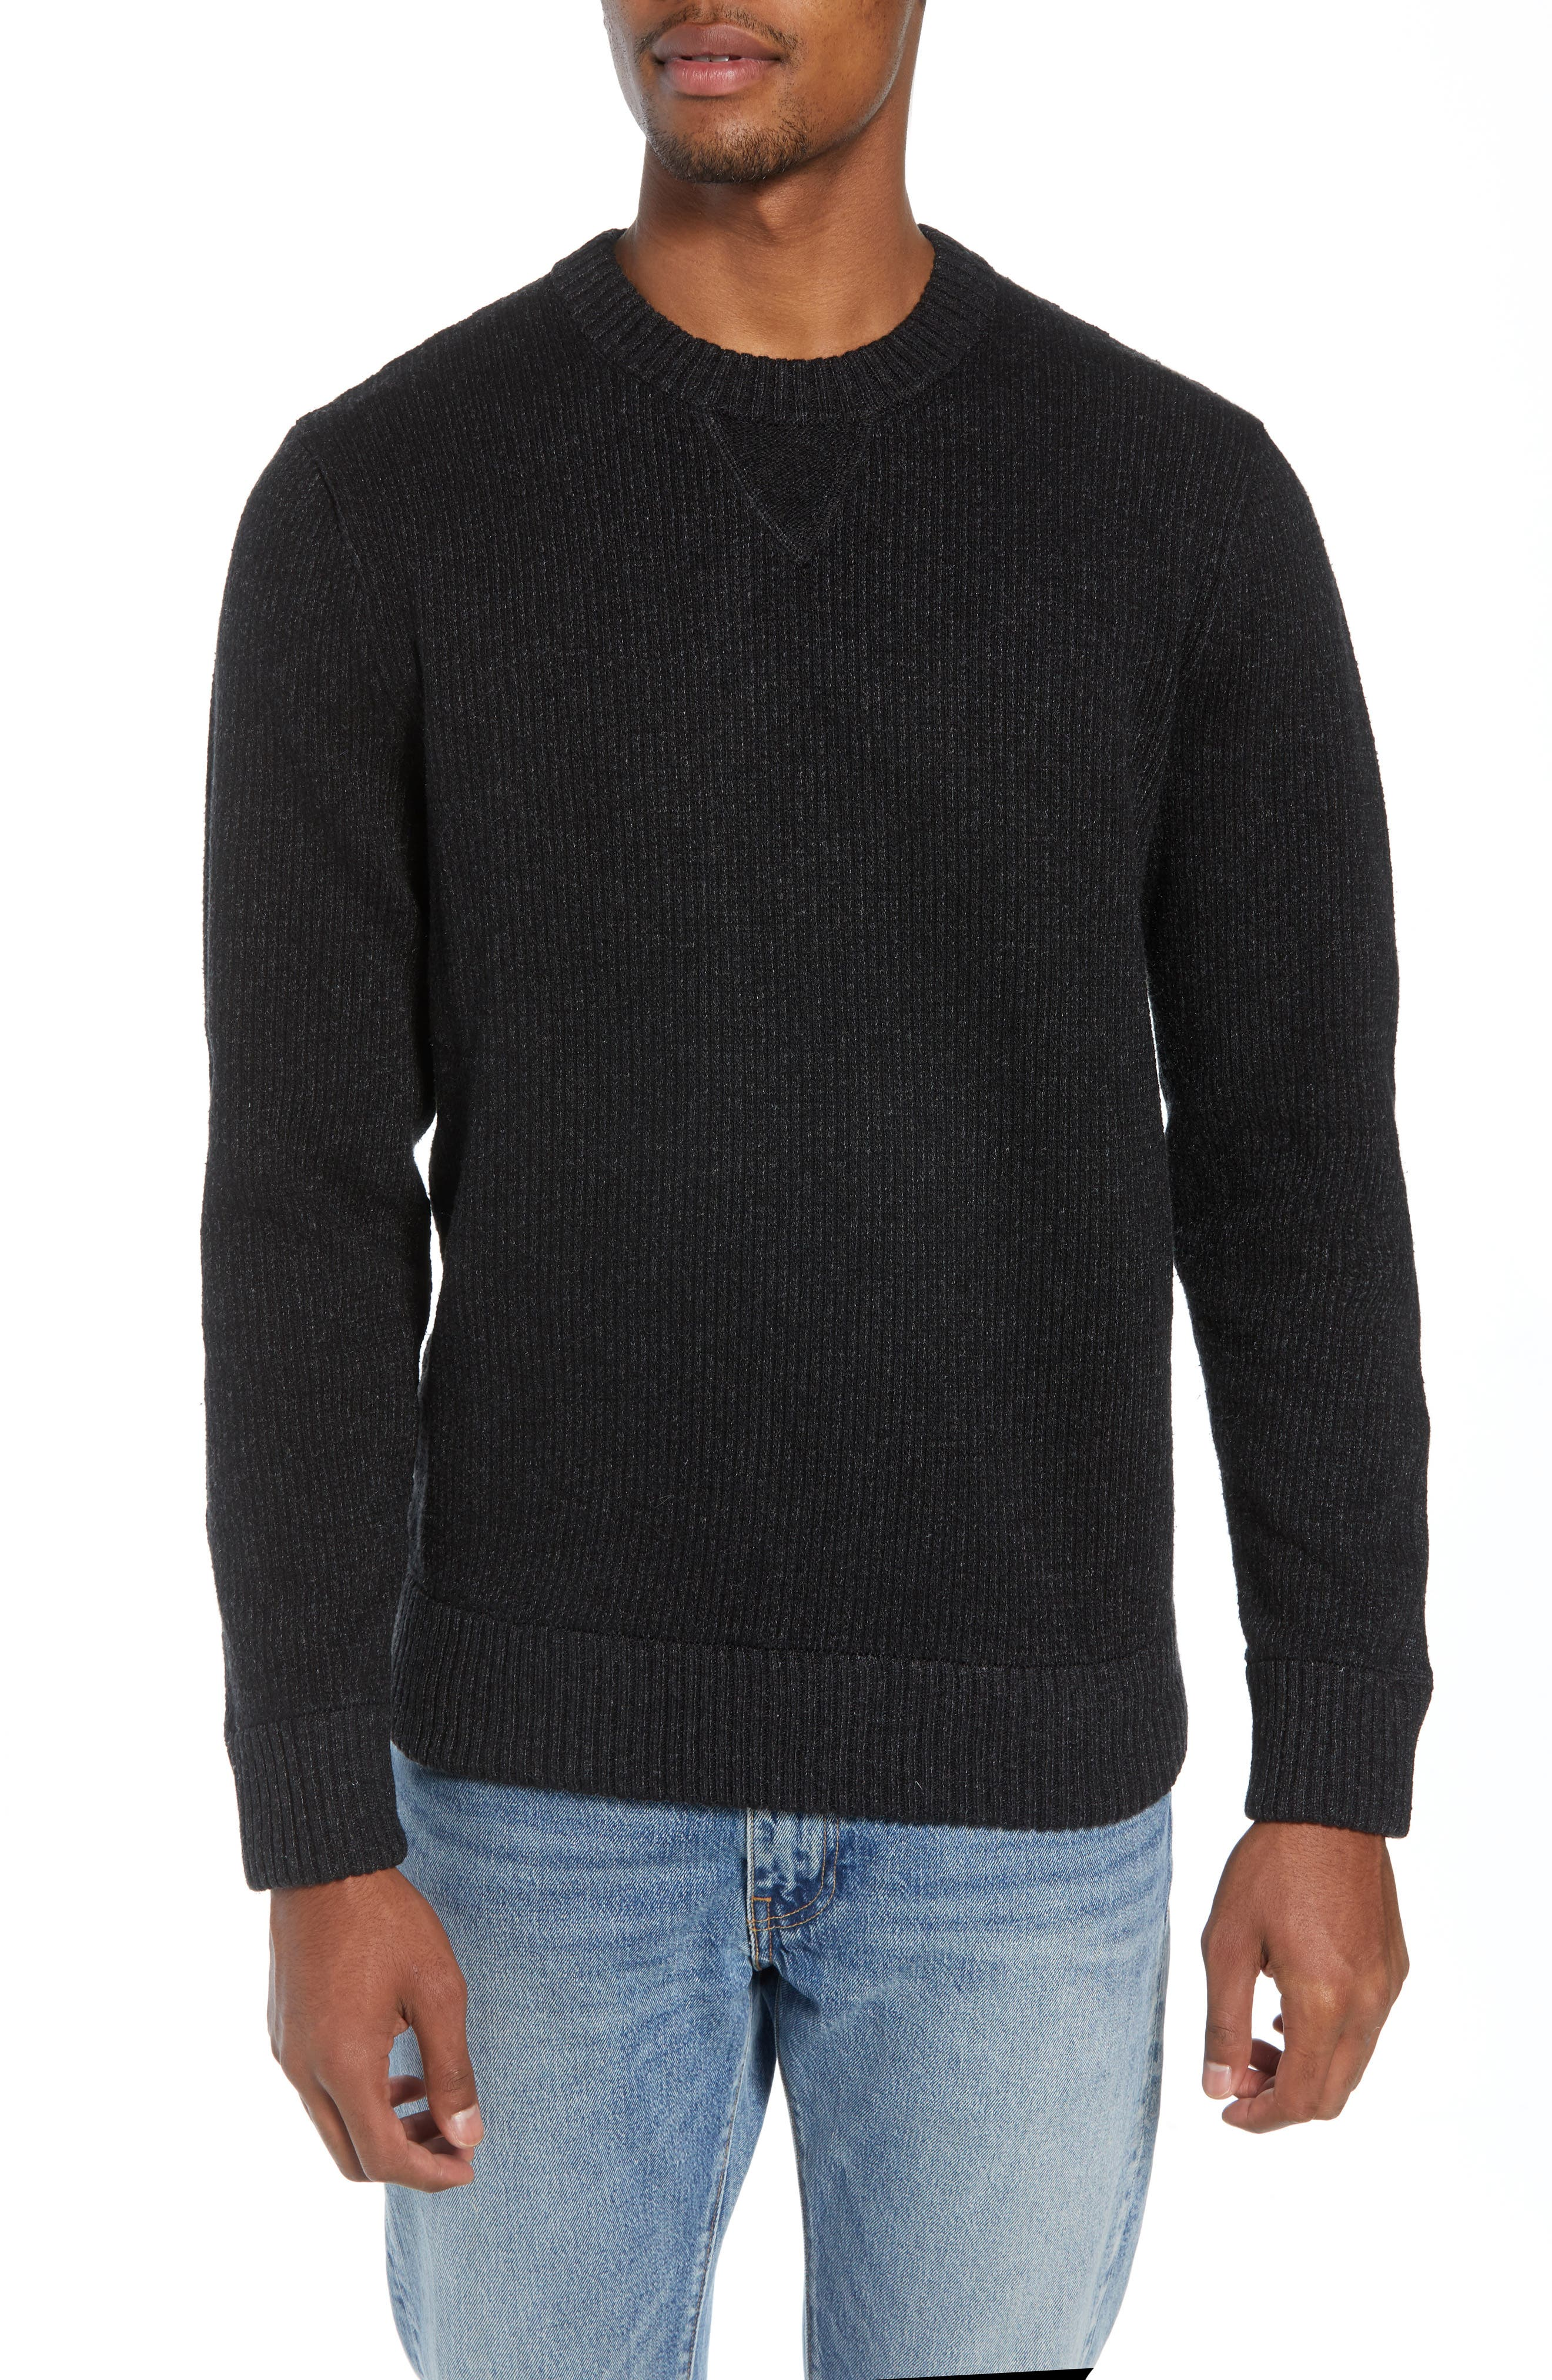 Off Country Crewneck Sweater,                             Main thumbnail 1, color,                             020